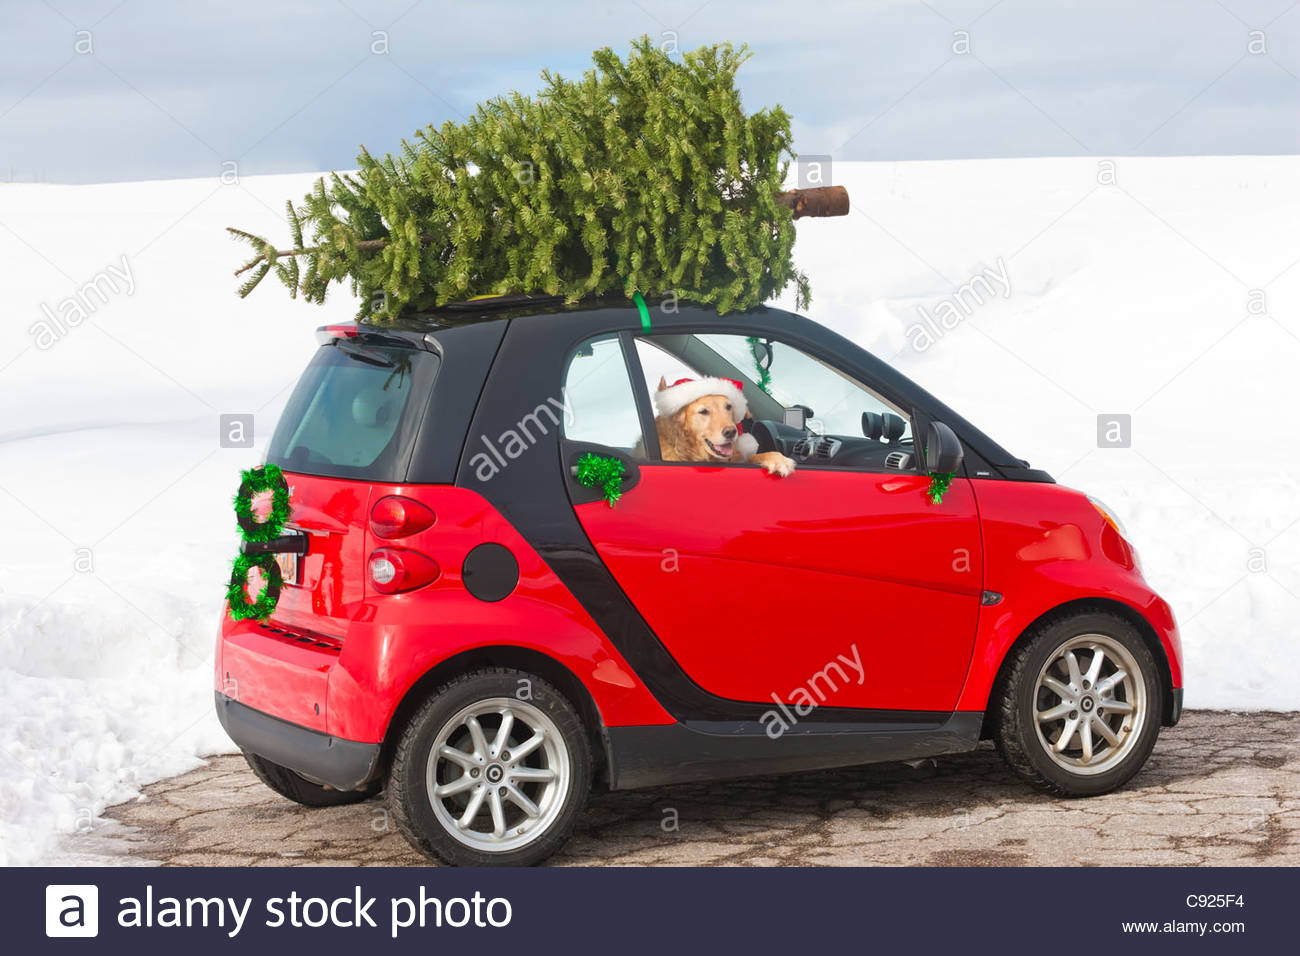 Red Smart Car With A Christmas Tree On Top And Golden Retriever  - Christmas Tree On Car